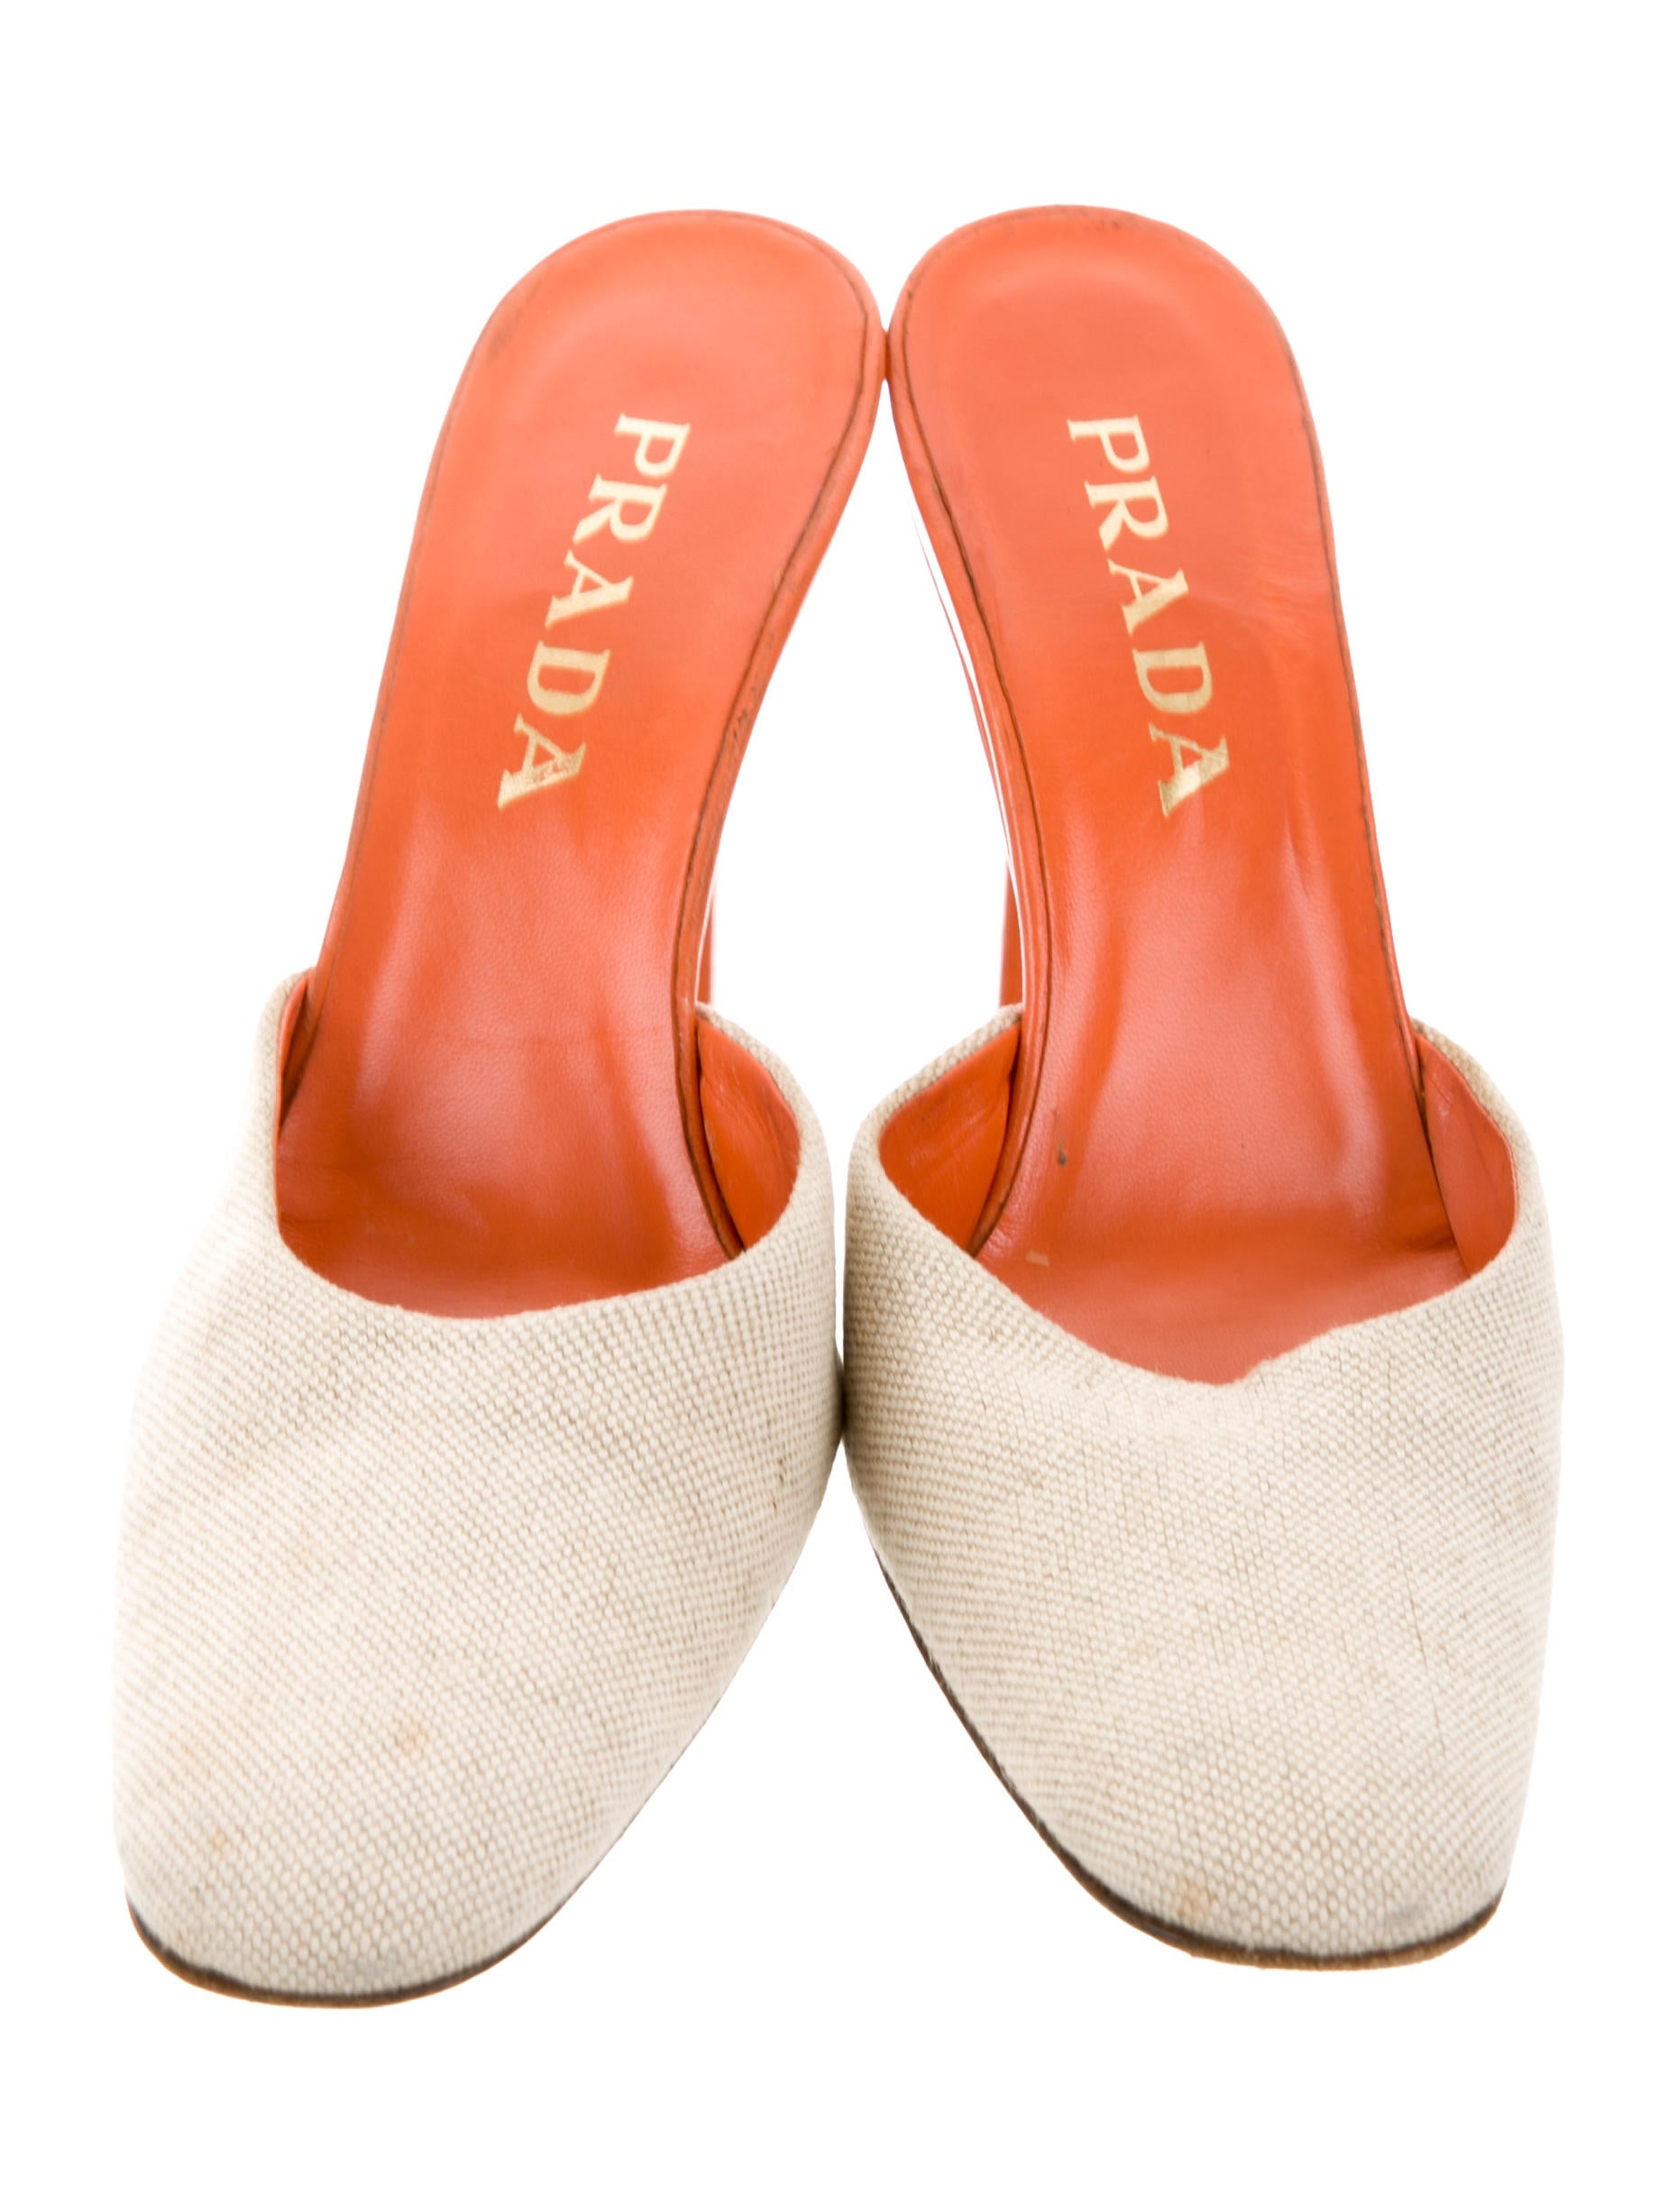 Prada Canvas Round-Toe Mules